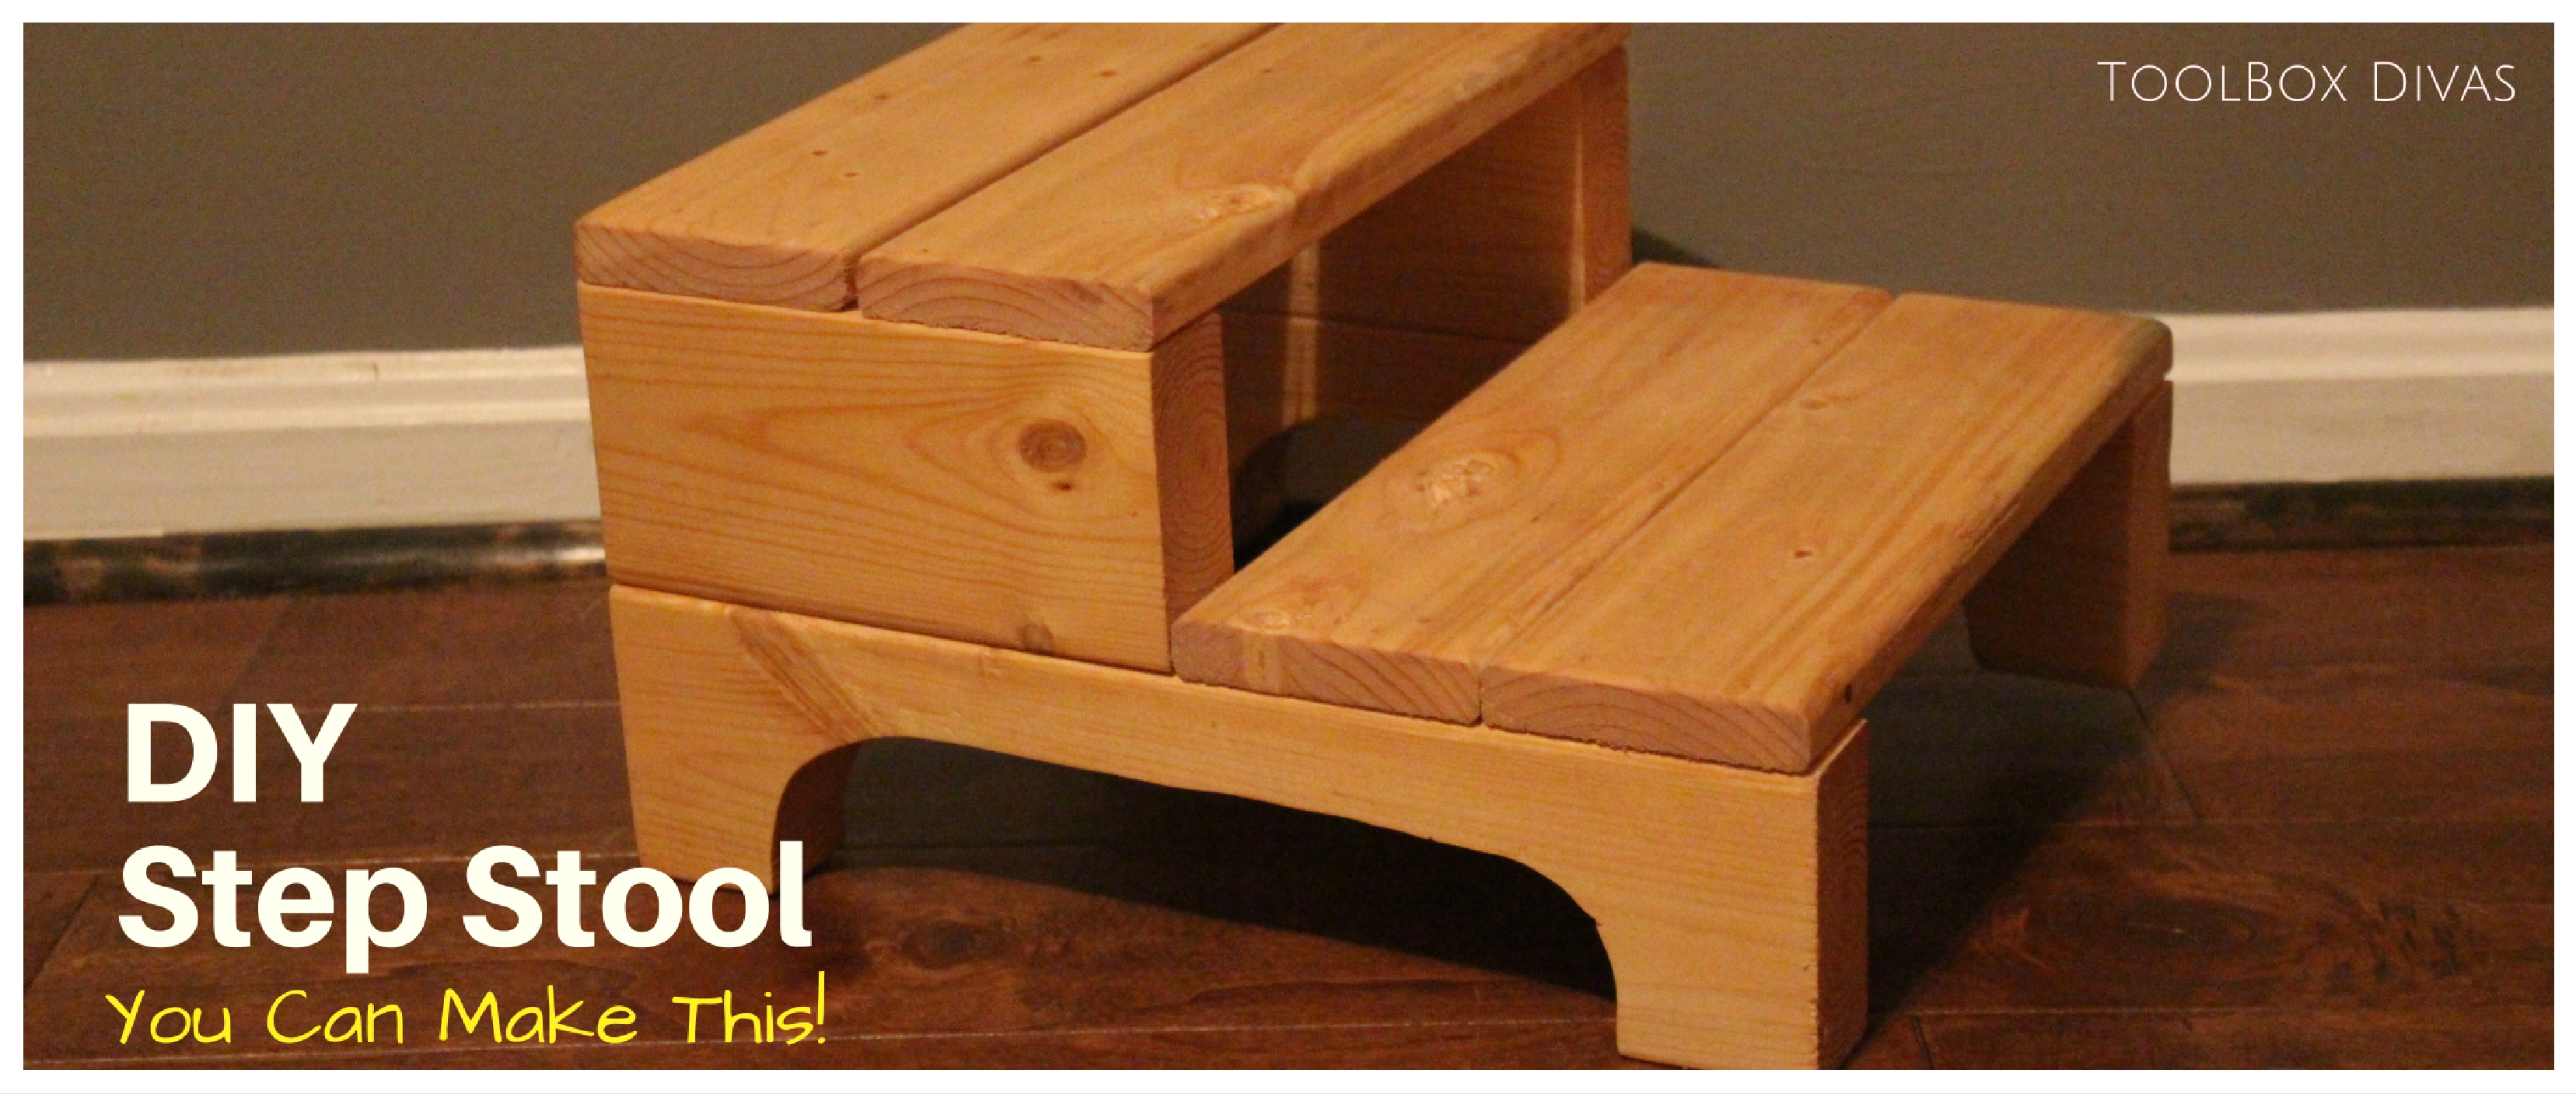 How to Make a Simple Step Stool